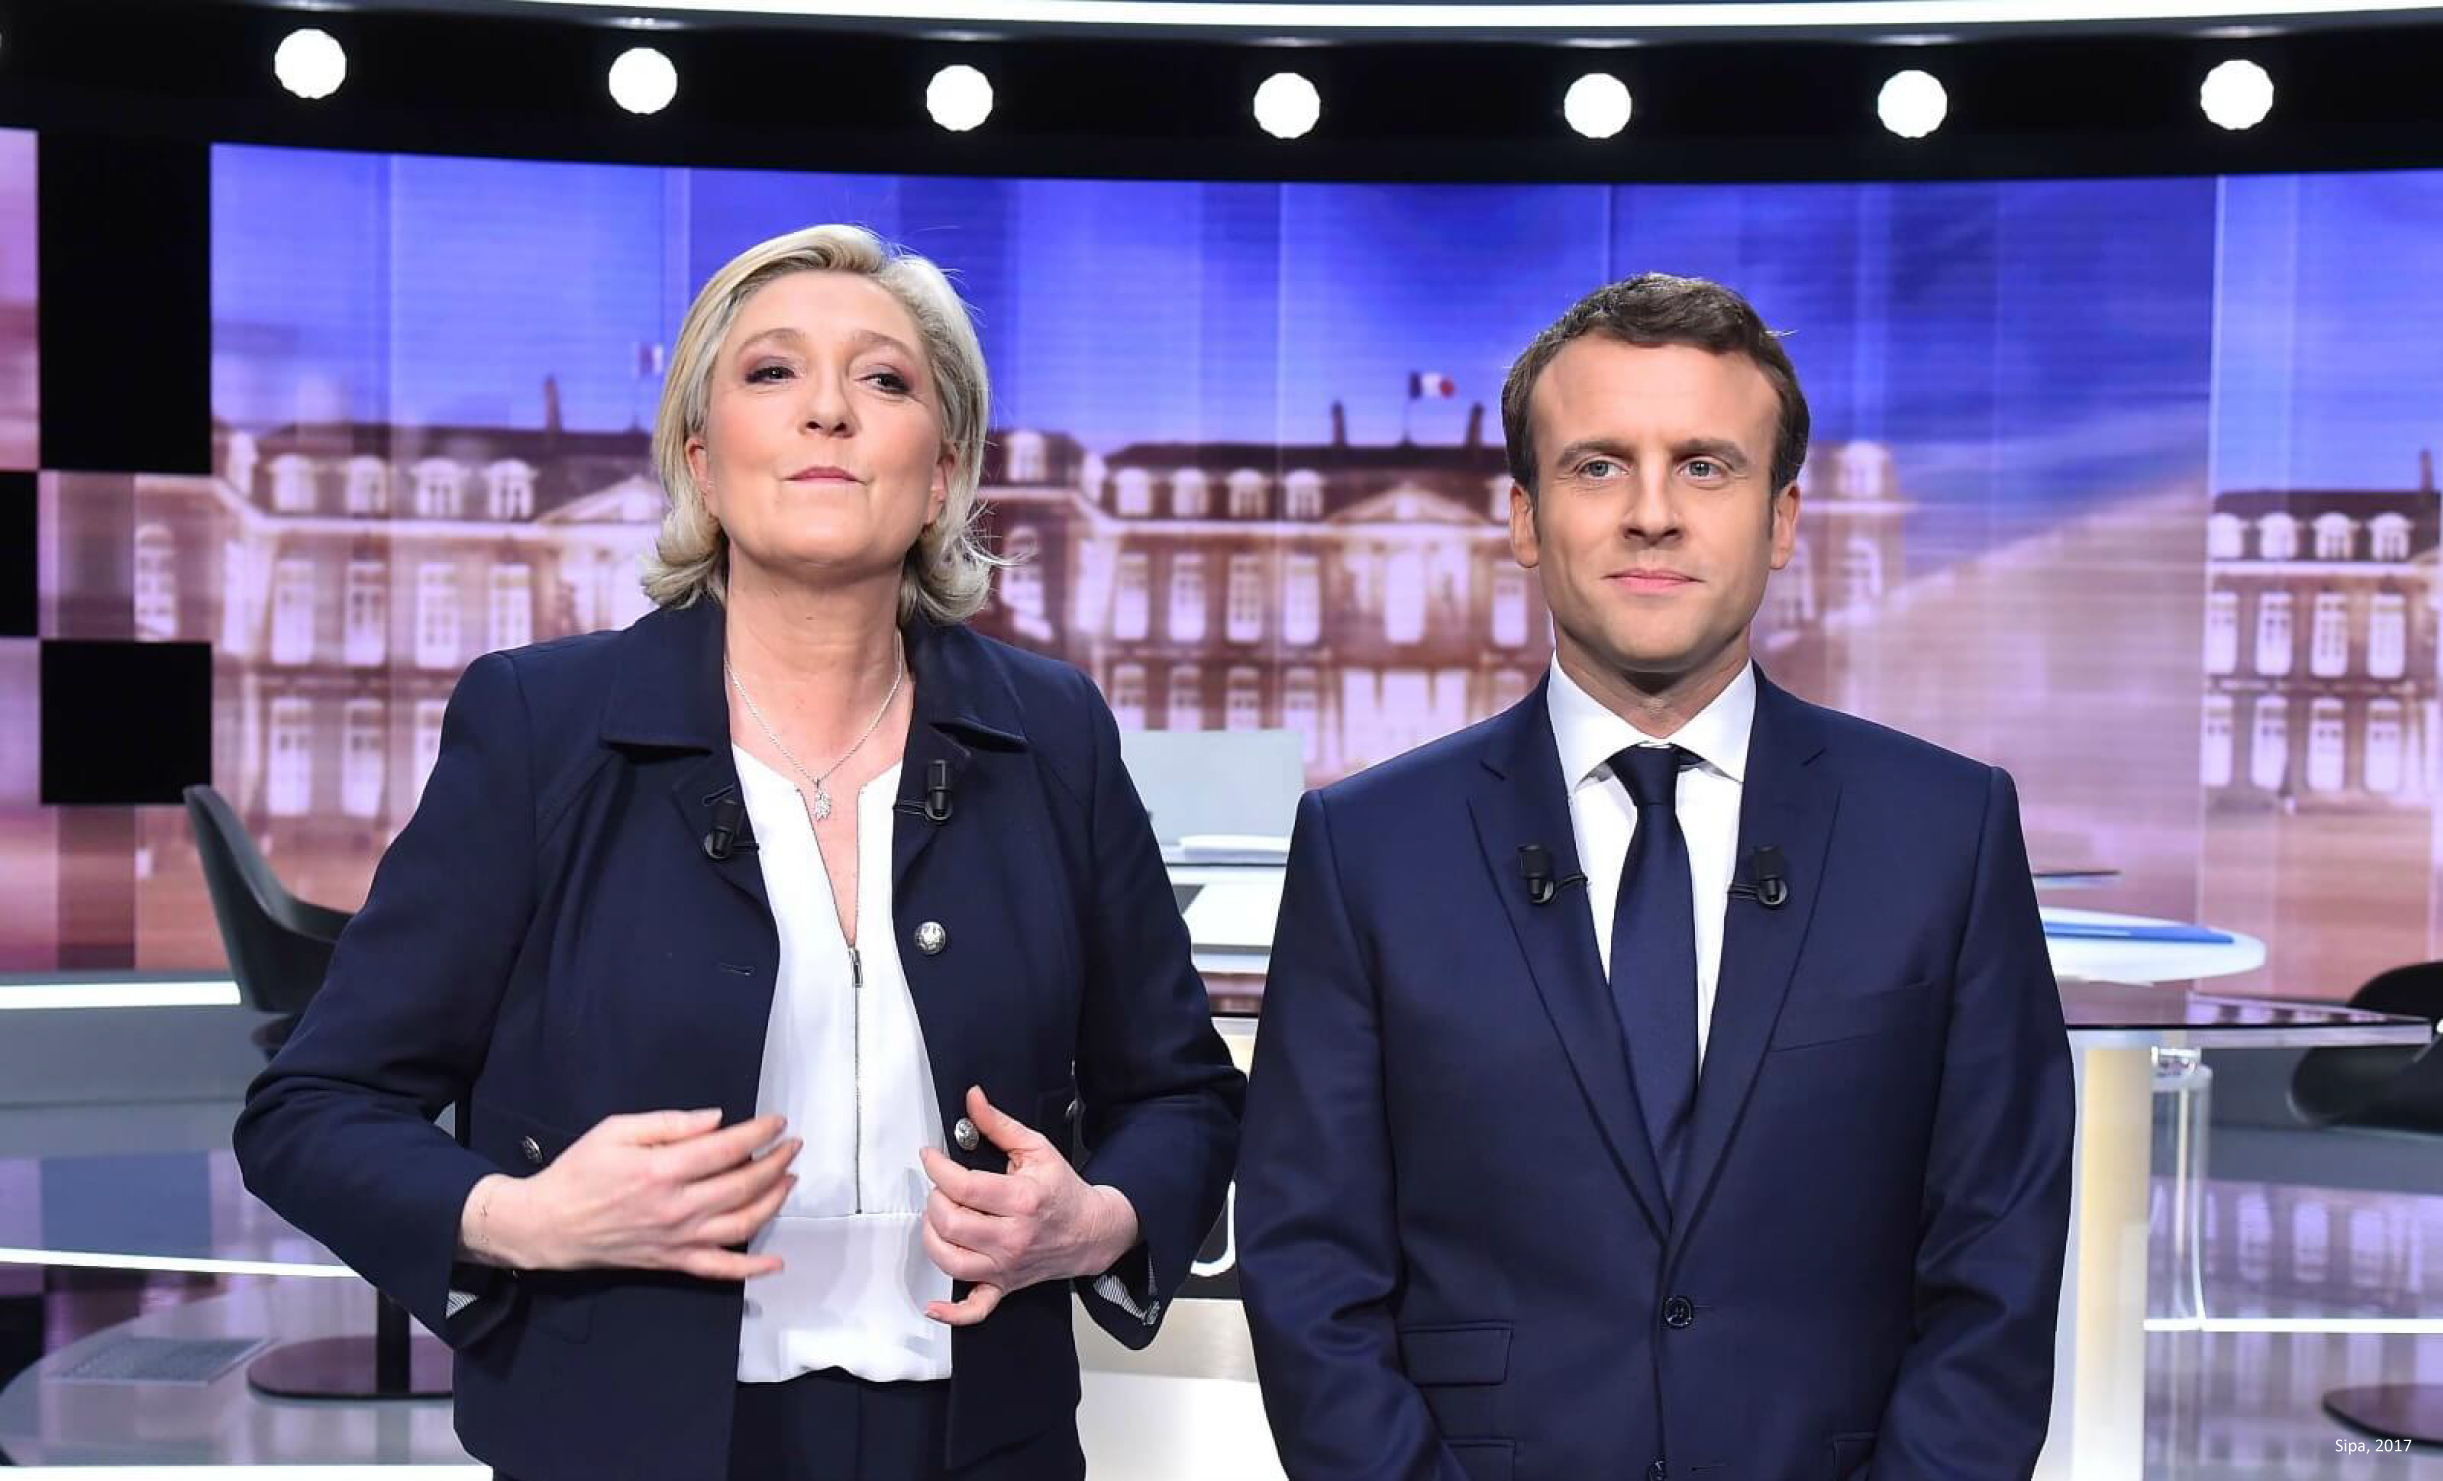 ventdouxprod 2019 nicolas barbier if my continent weren't so ruthless with african economic refugees le pen macron presidential elections